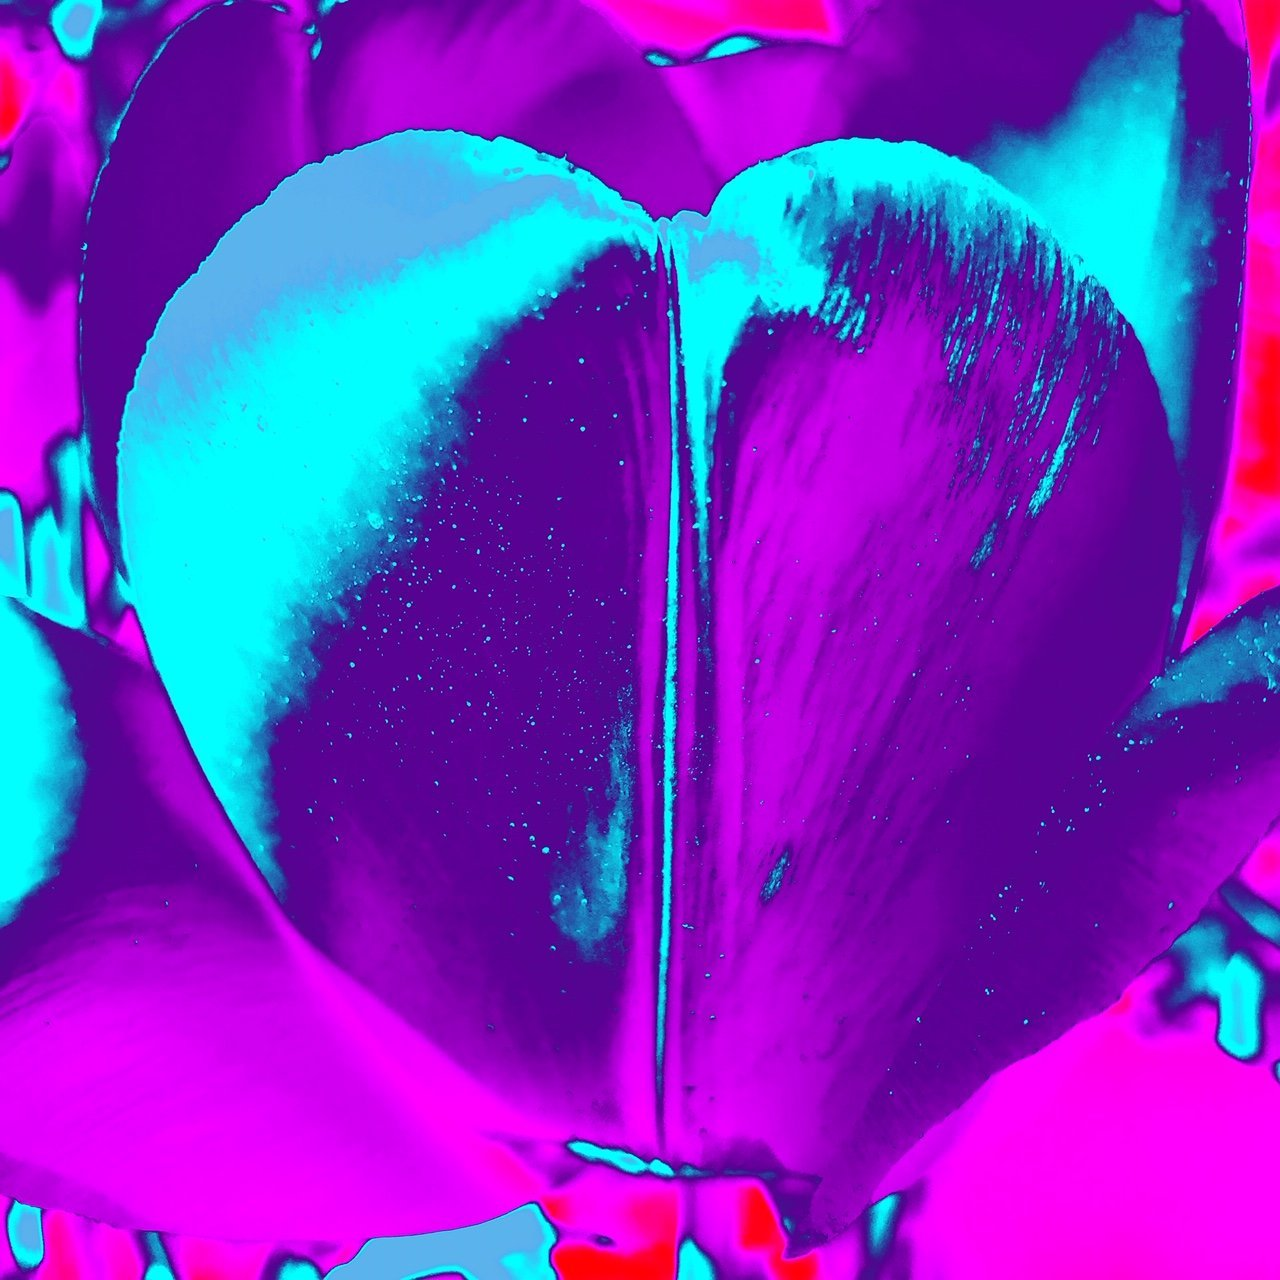 James Lahey - Tulips as My Heart in the Universe (Purple)